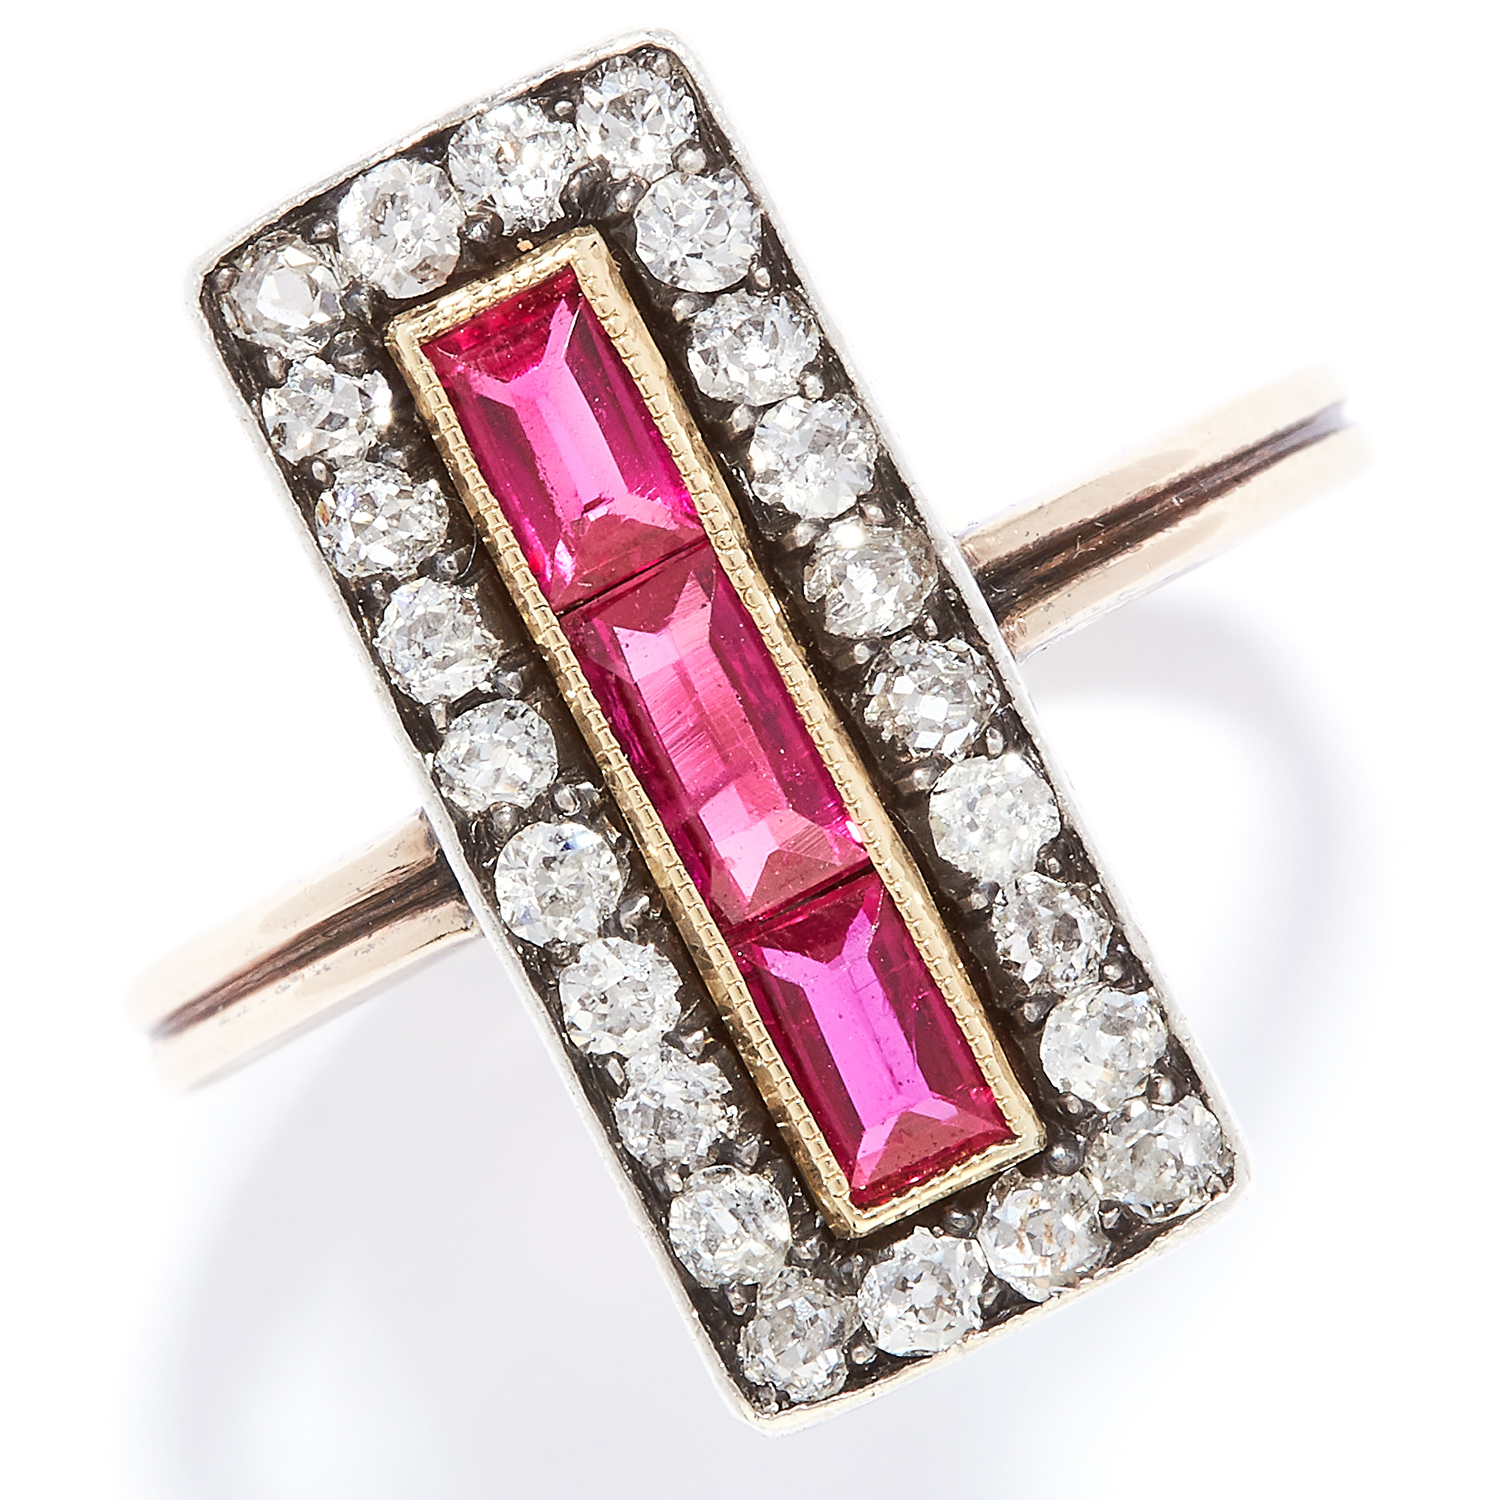 ANTIQUE DIAMOND AND RED STONE DRESS RING in yellow gold, set with a row of baguette cut red